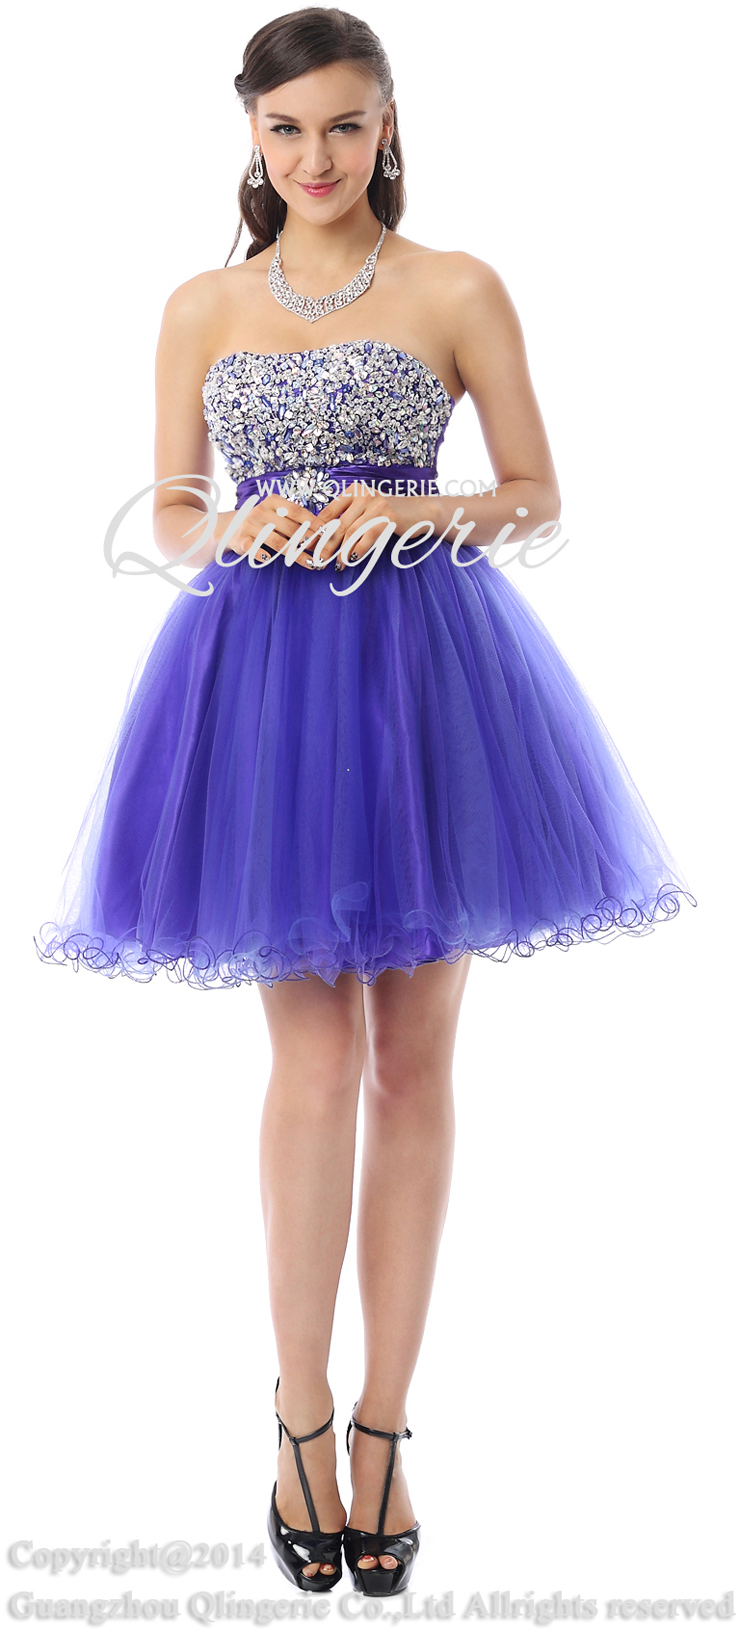 Fairy Violet A-line Mini Dress, Cheap Cocktail Dress, Girls Homecoming Dress on sale, Lovely Sweet 16 Dress, Prom Dress For Cheap, #Y30071